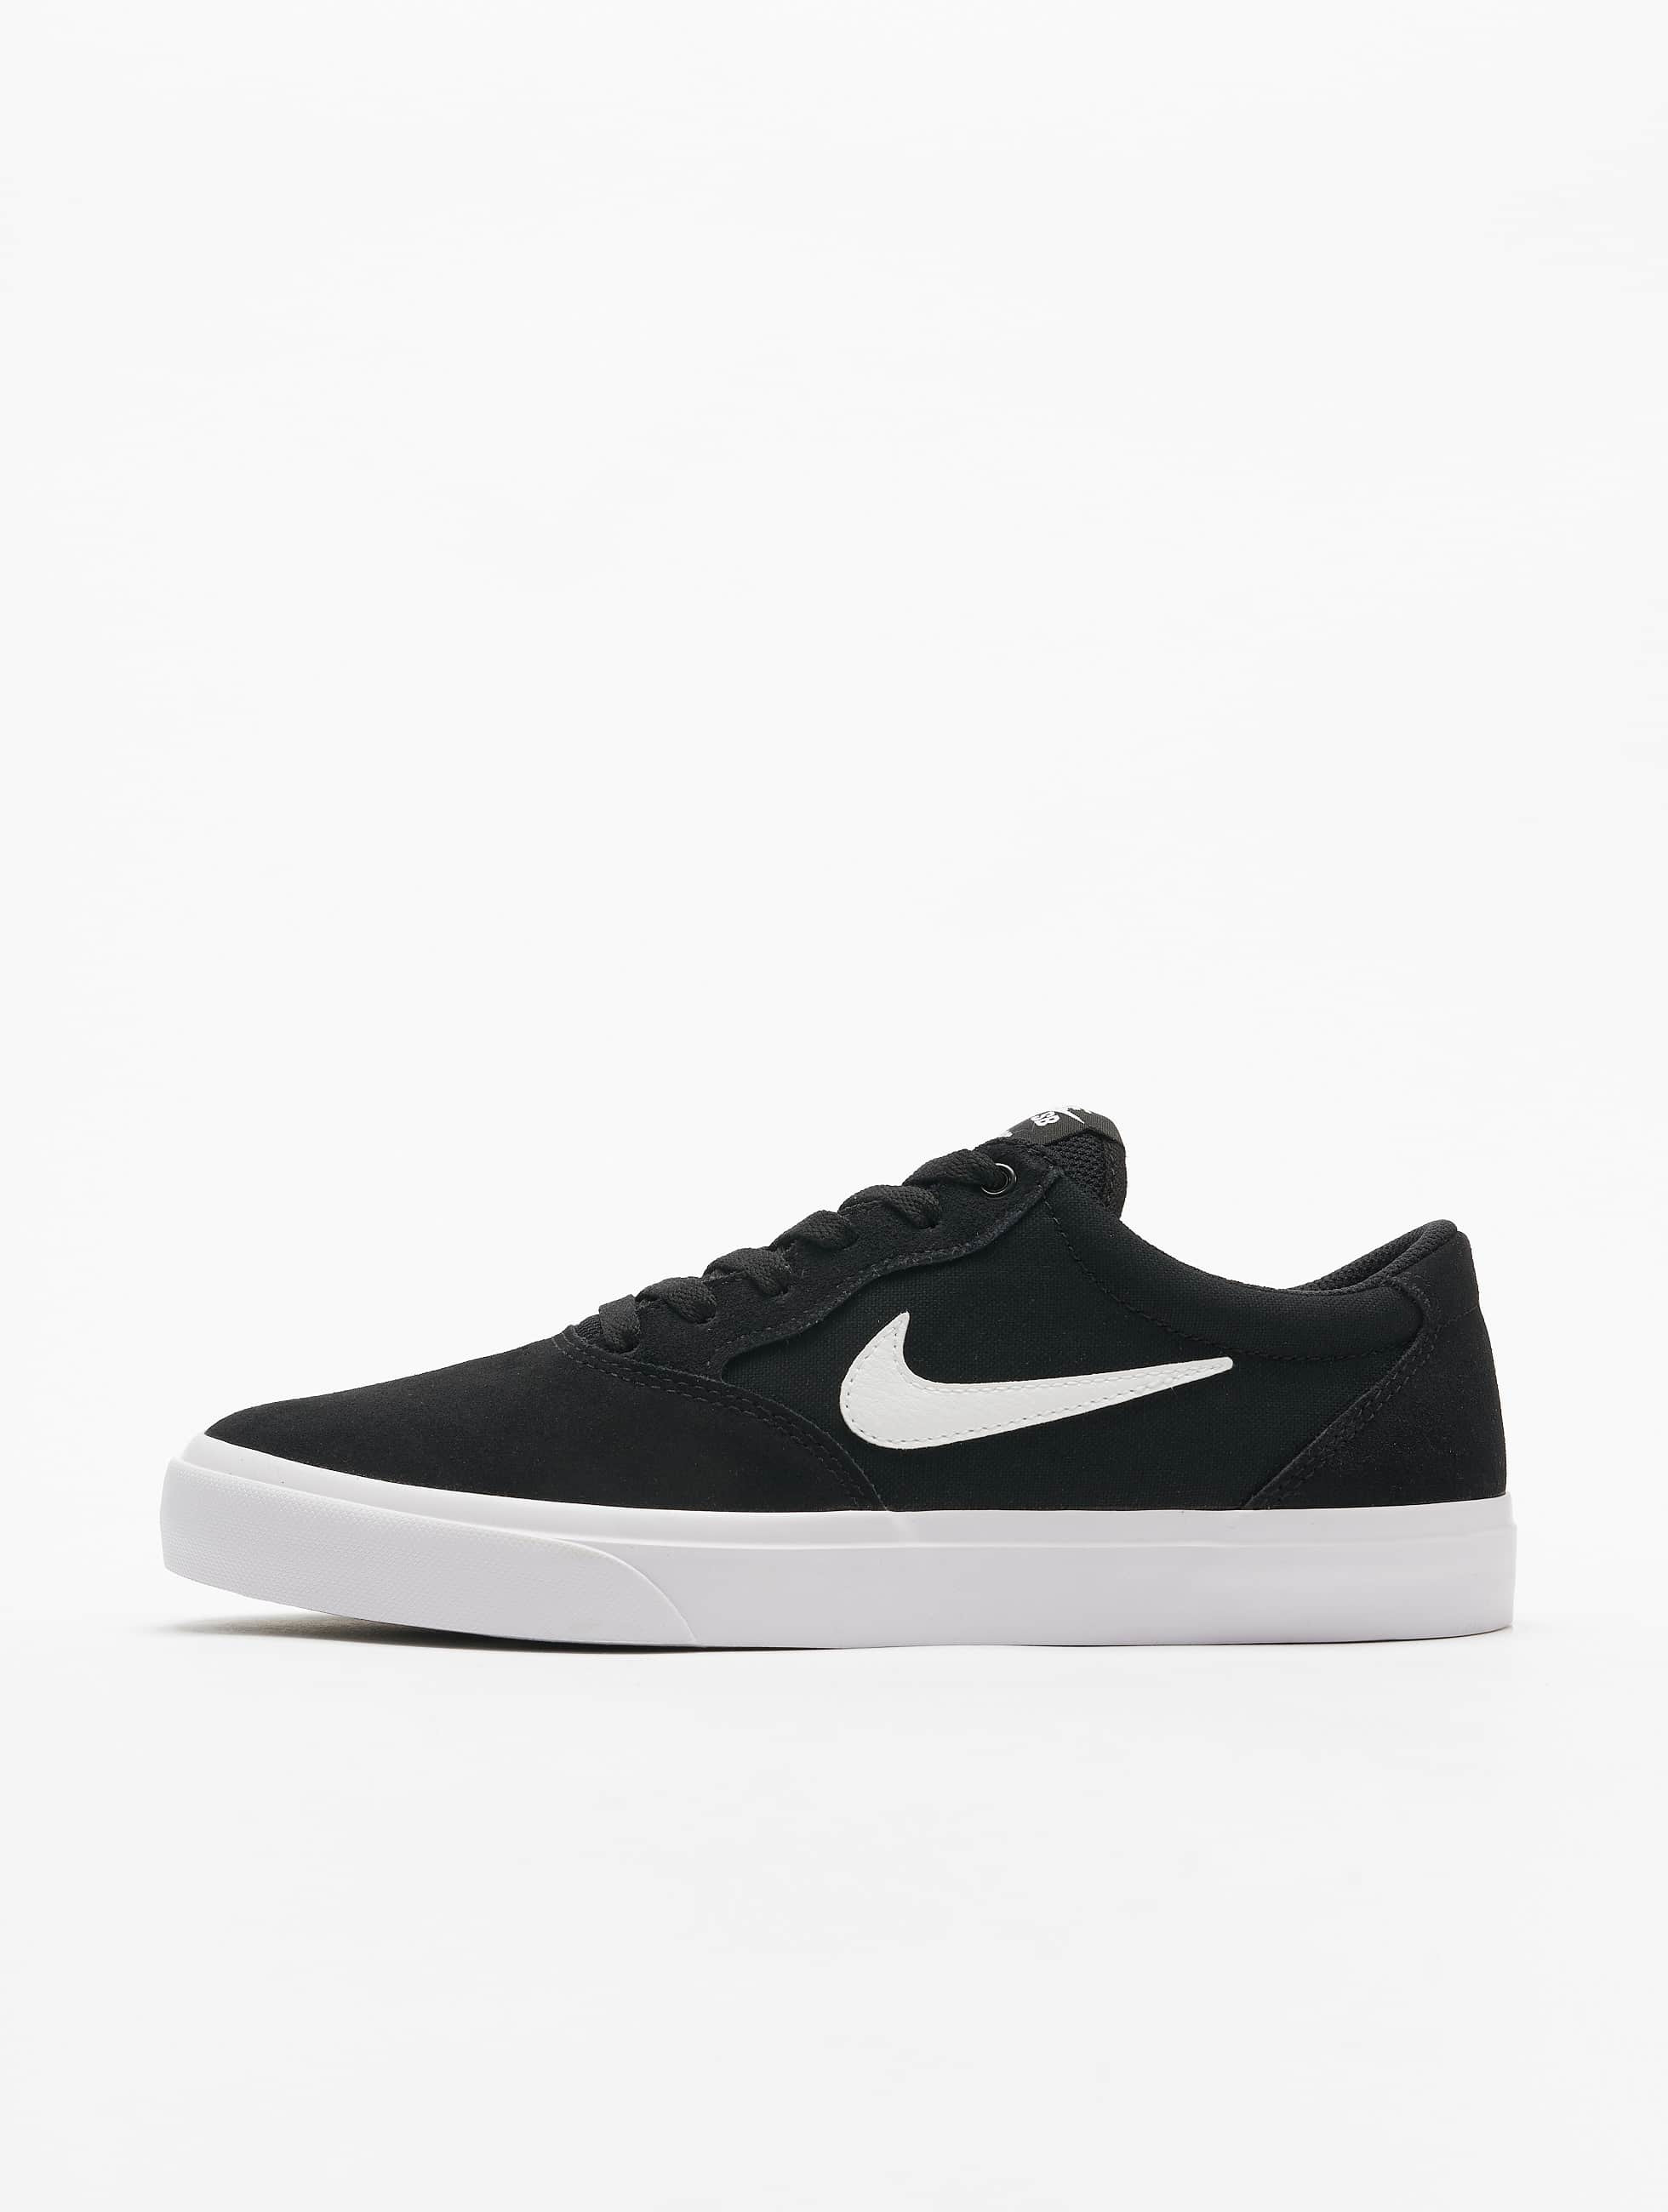 Nike SB Chron SLR Sneakers BlackWhite